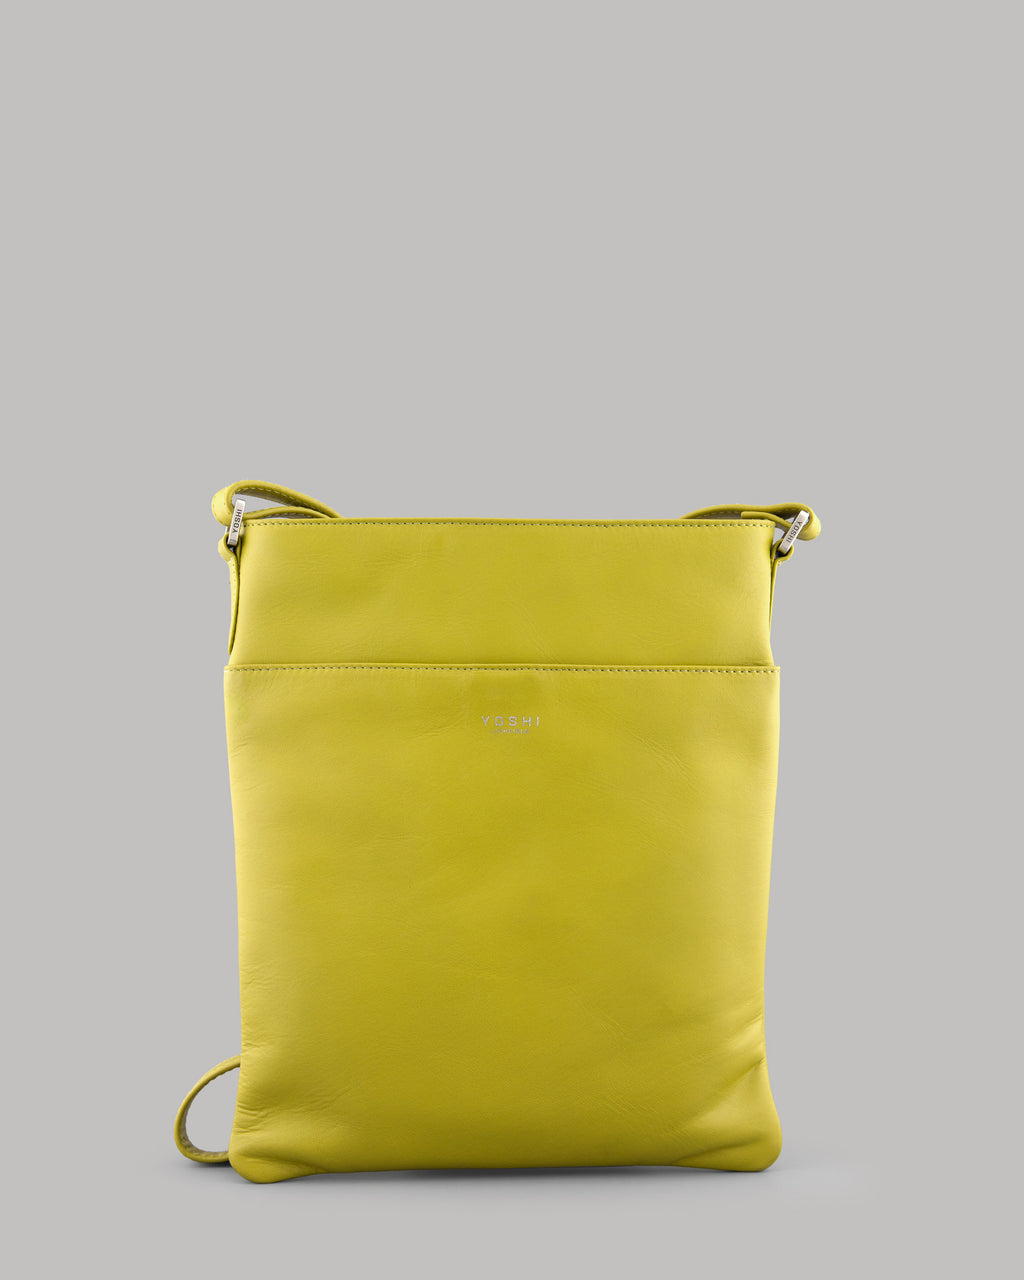 Farringdon Lunar Avocado Green Leather Cross Body Bag For Ladies